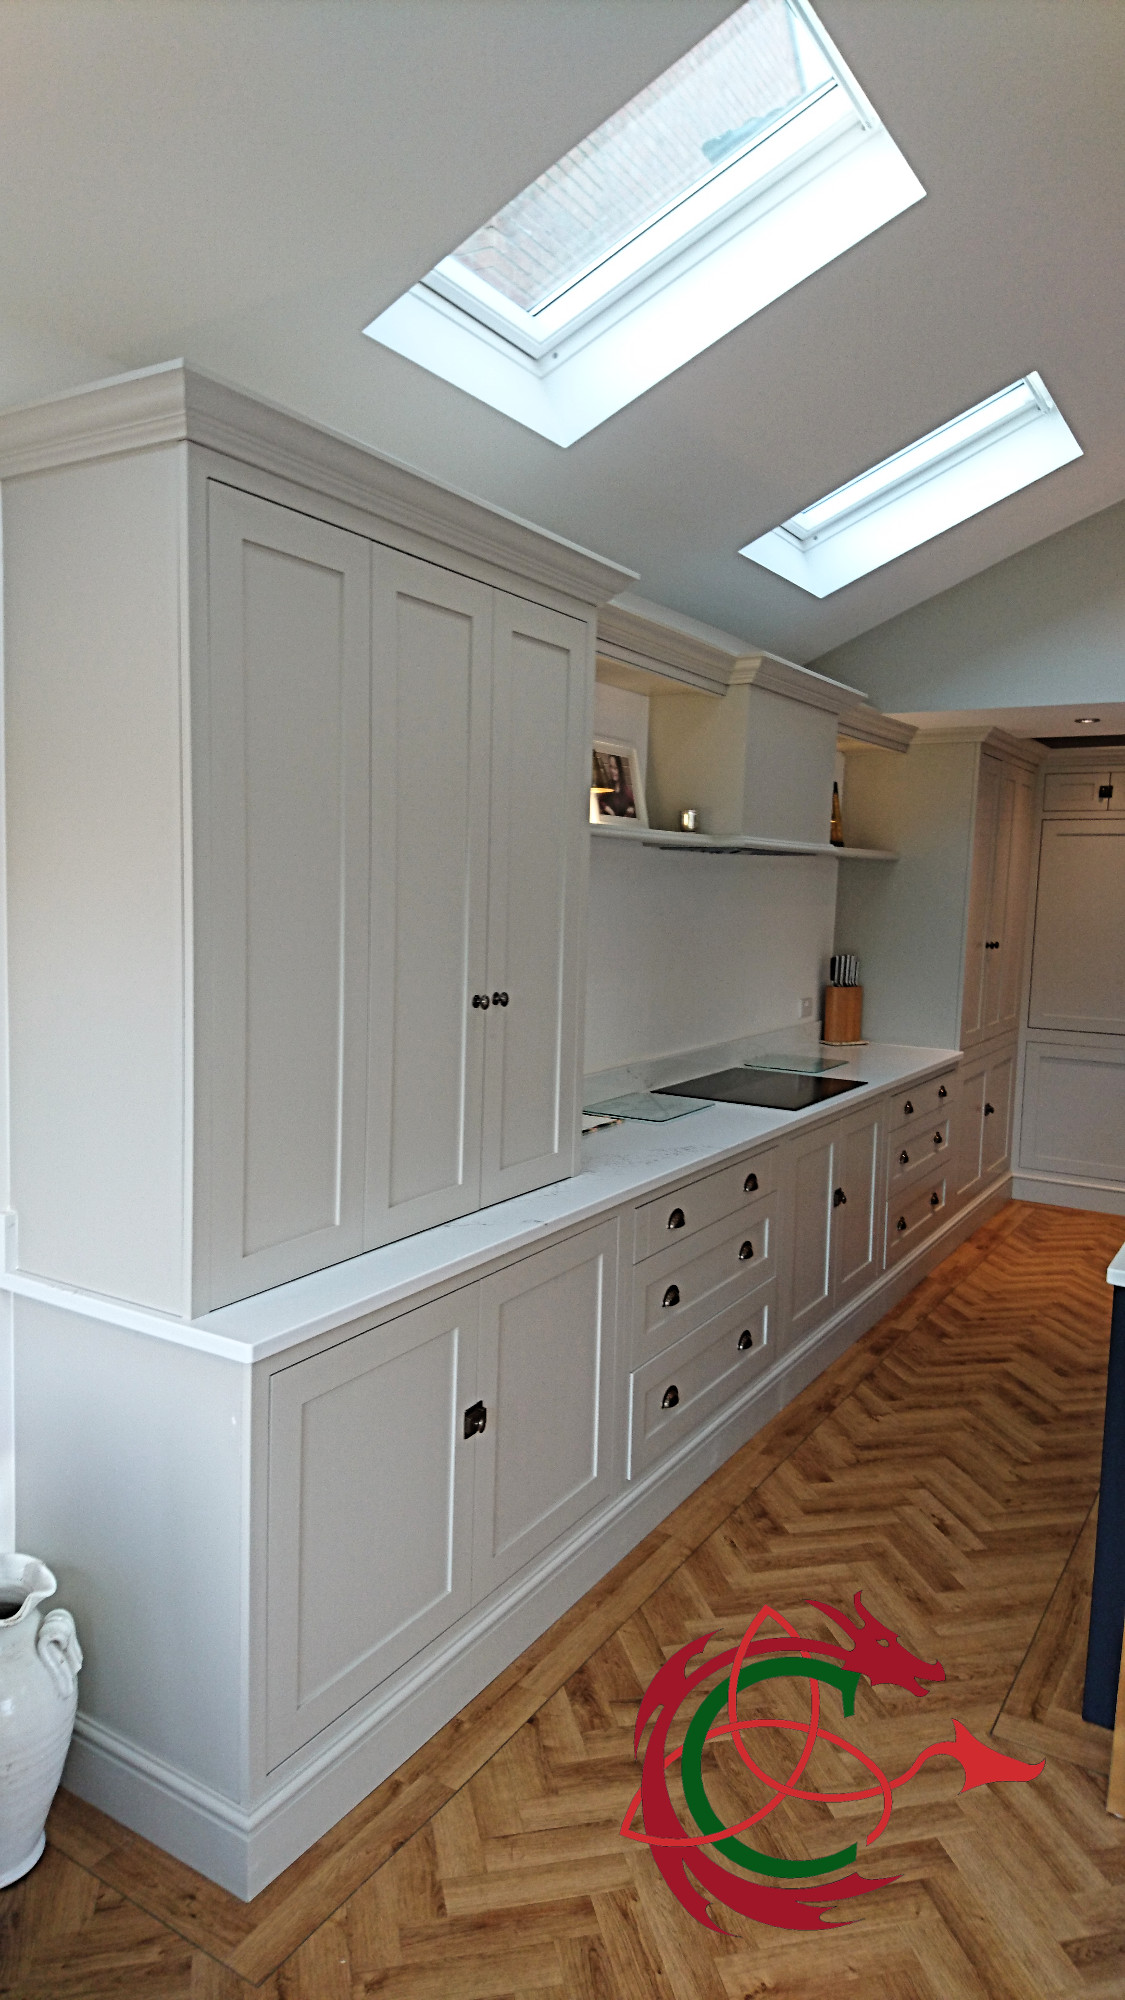 Traditional Style Kitchen Cabinets In West Midlands By Celtica Kitchens